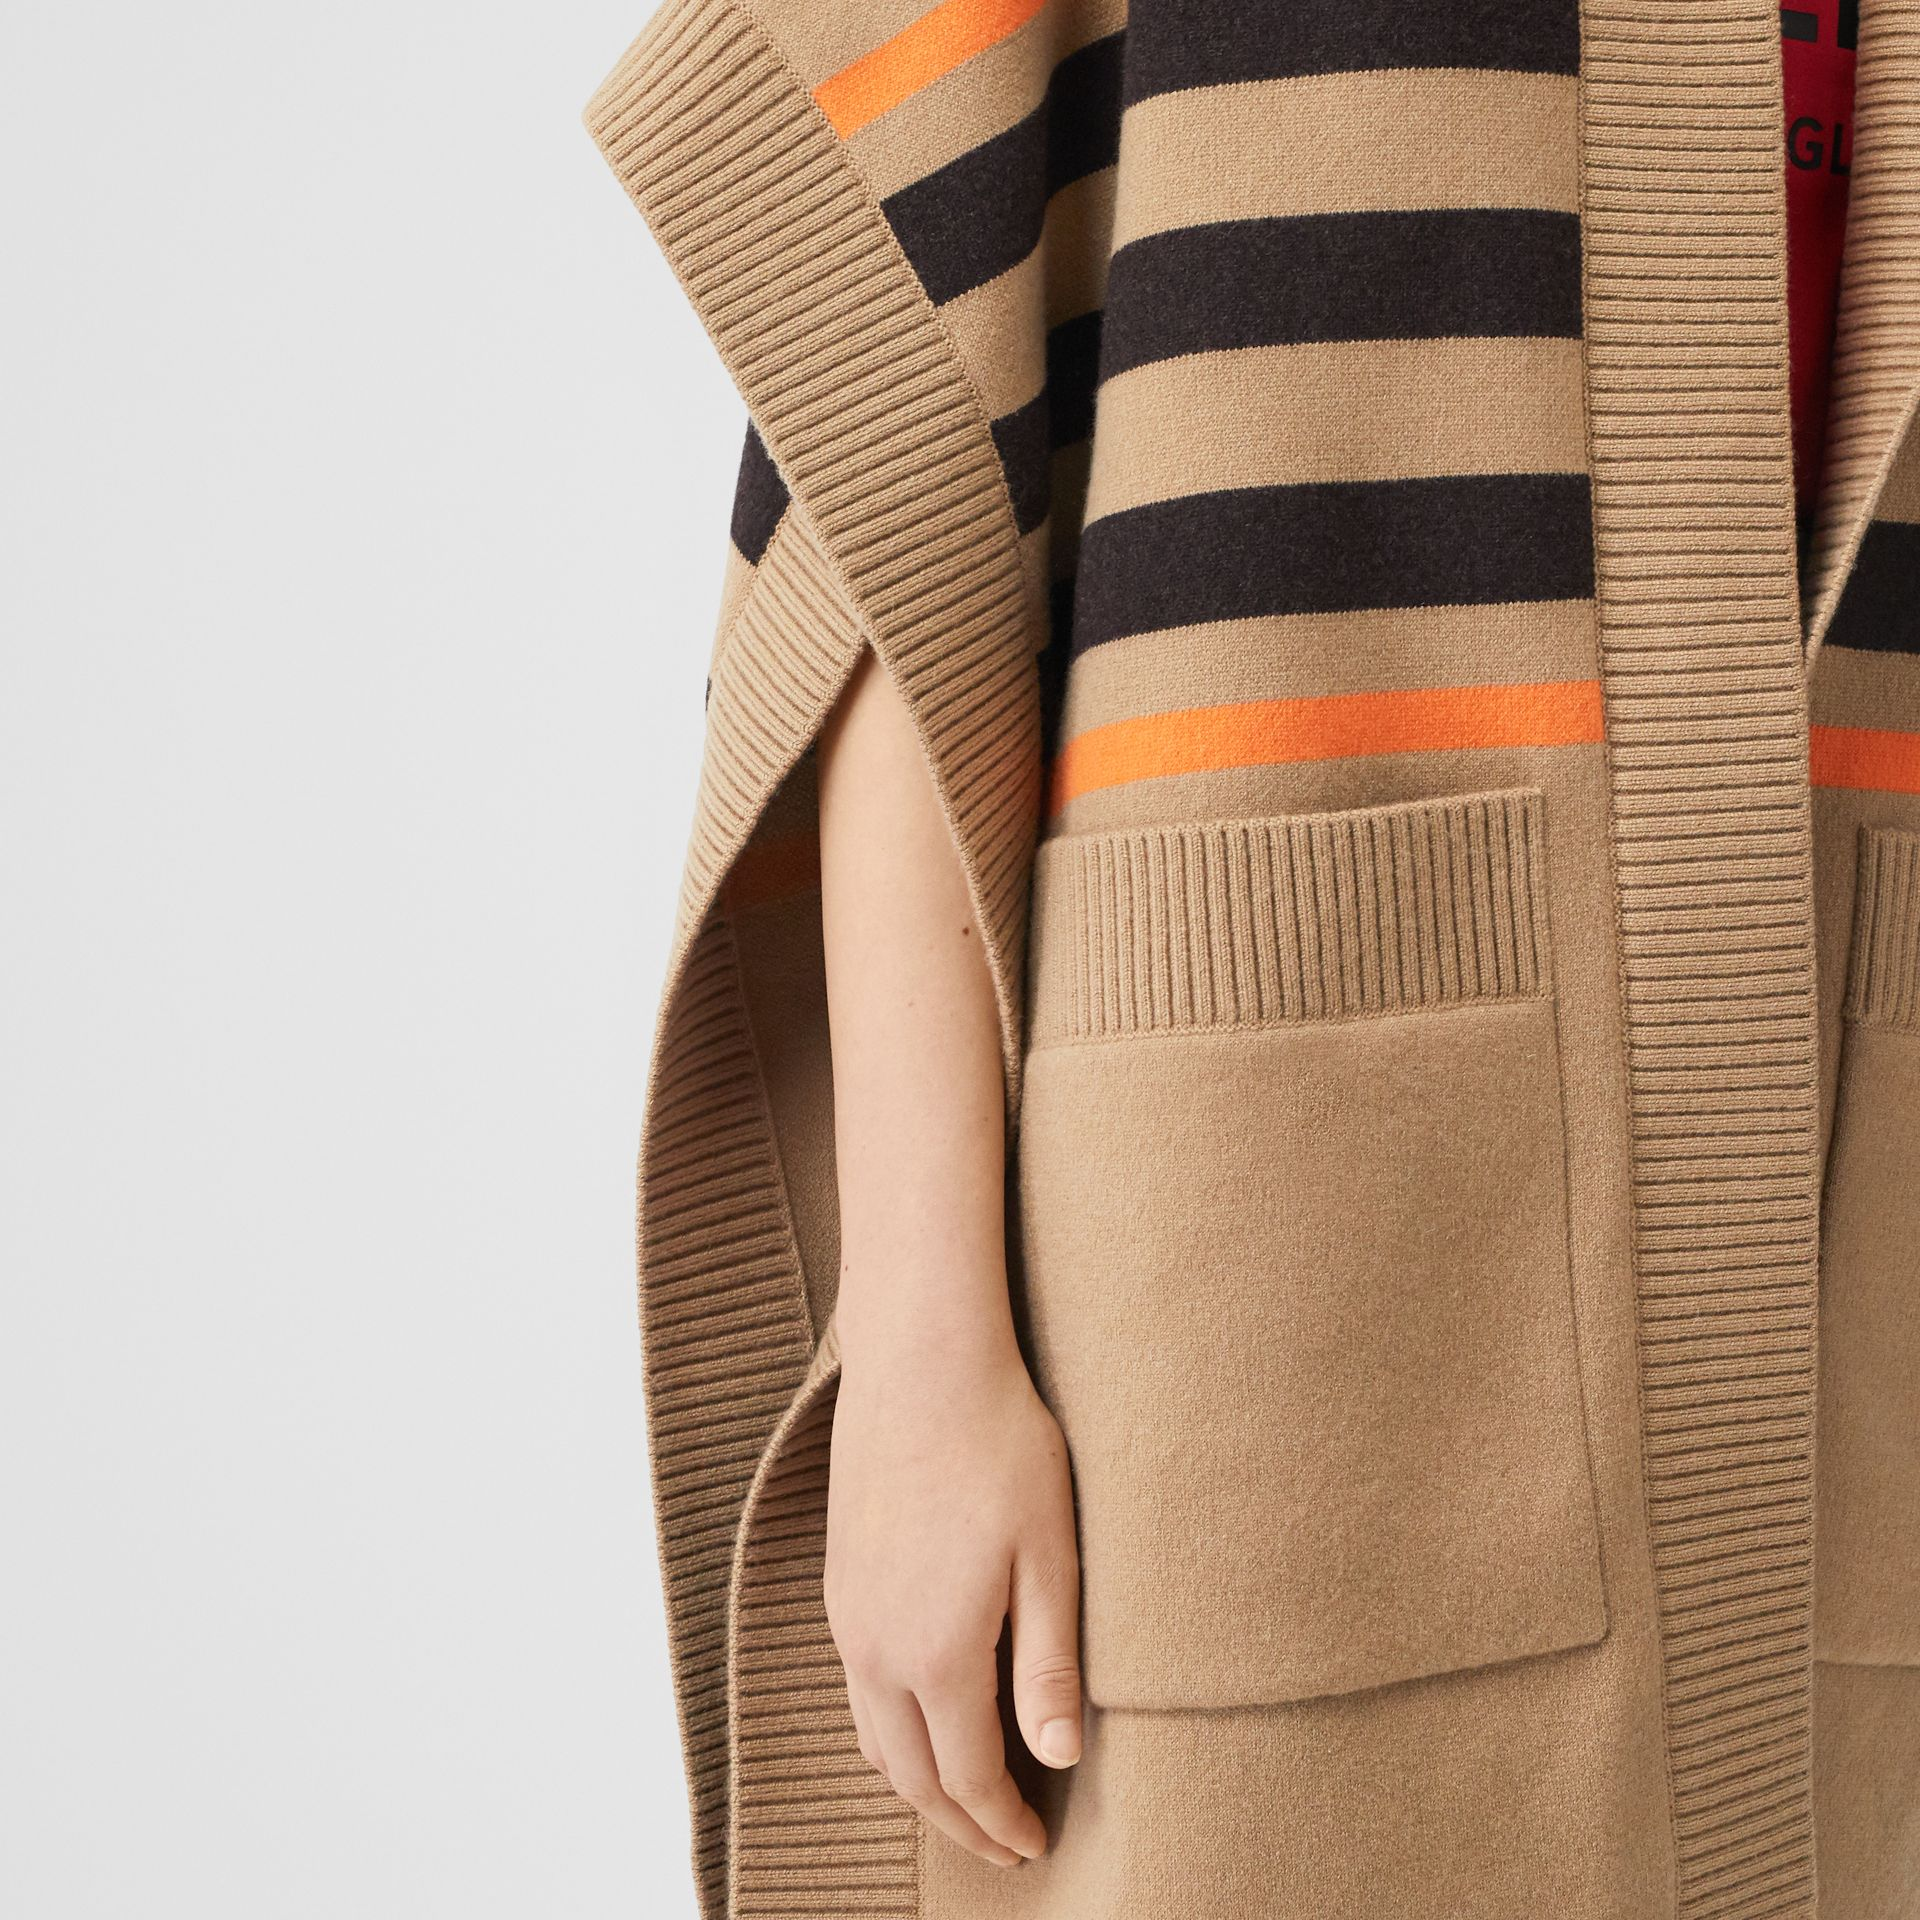 Monogram Motif Intarsia Wool Cashmere Blend Cape in Archive Beige - Women | Burberry - gallery image 4